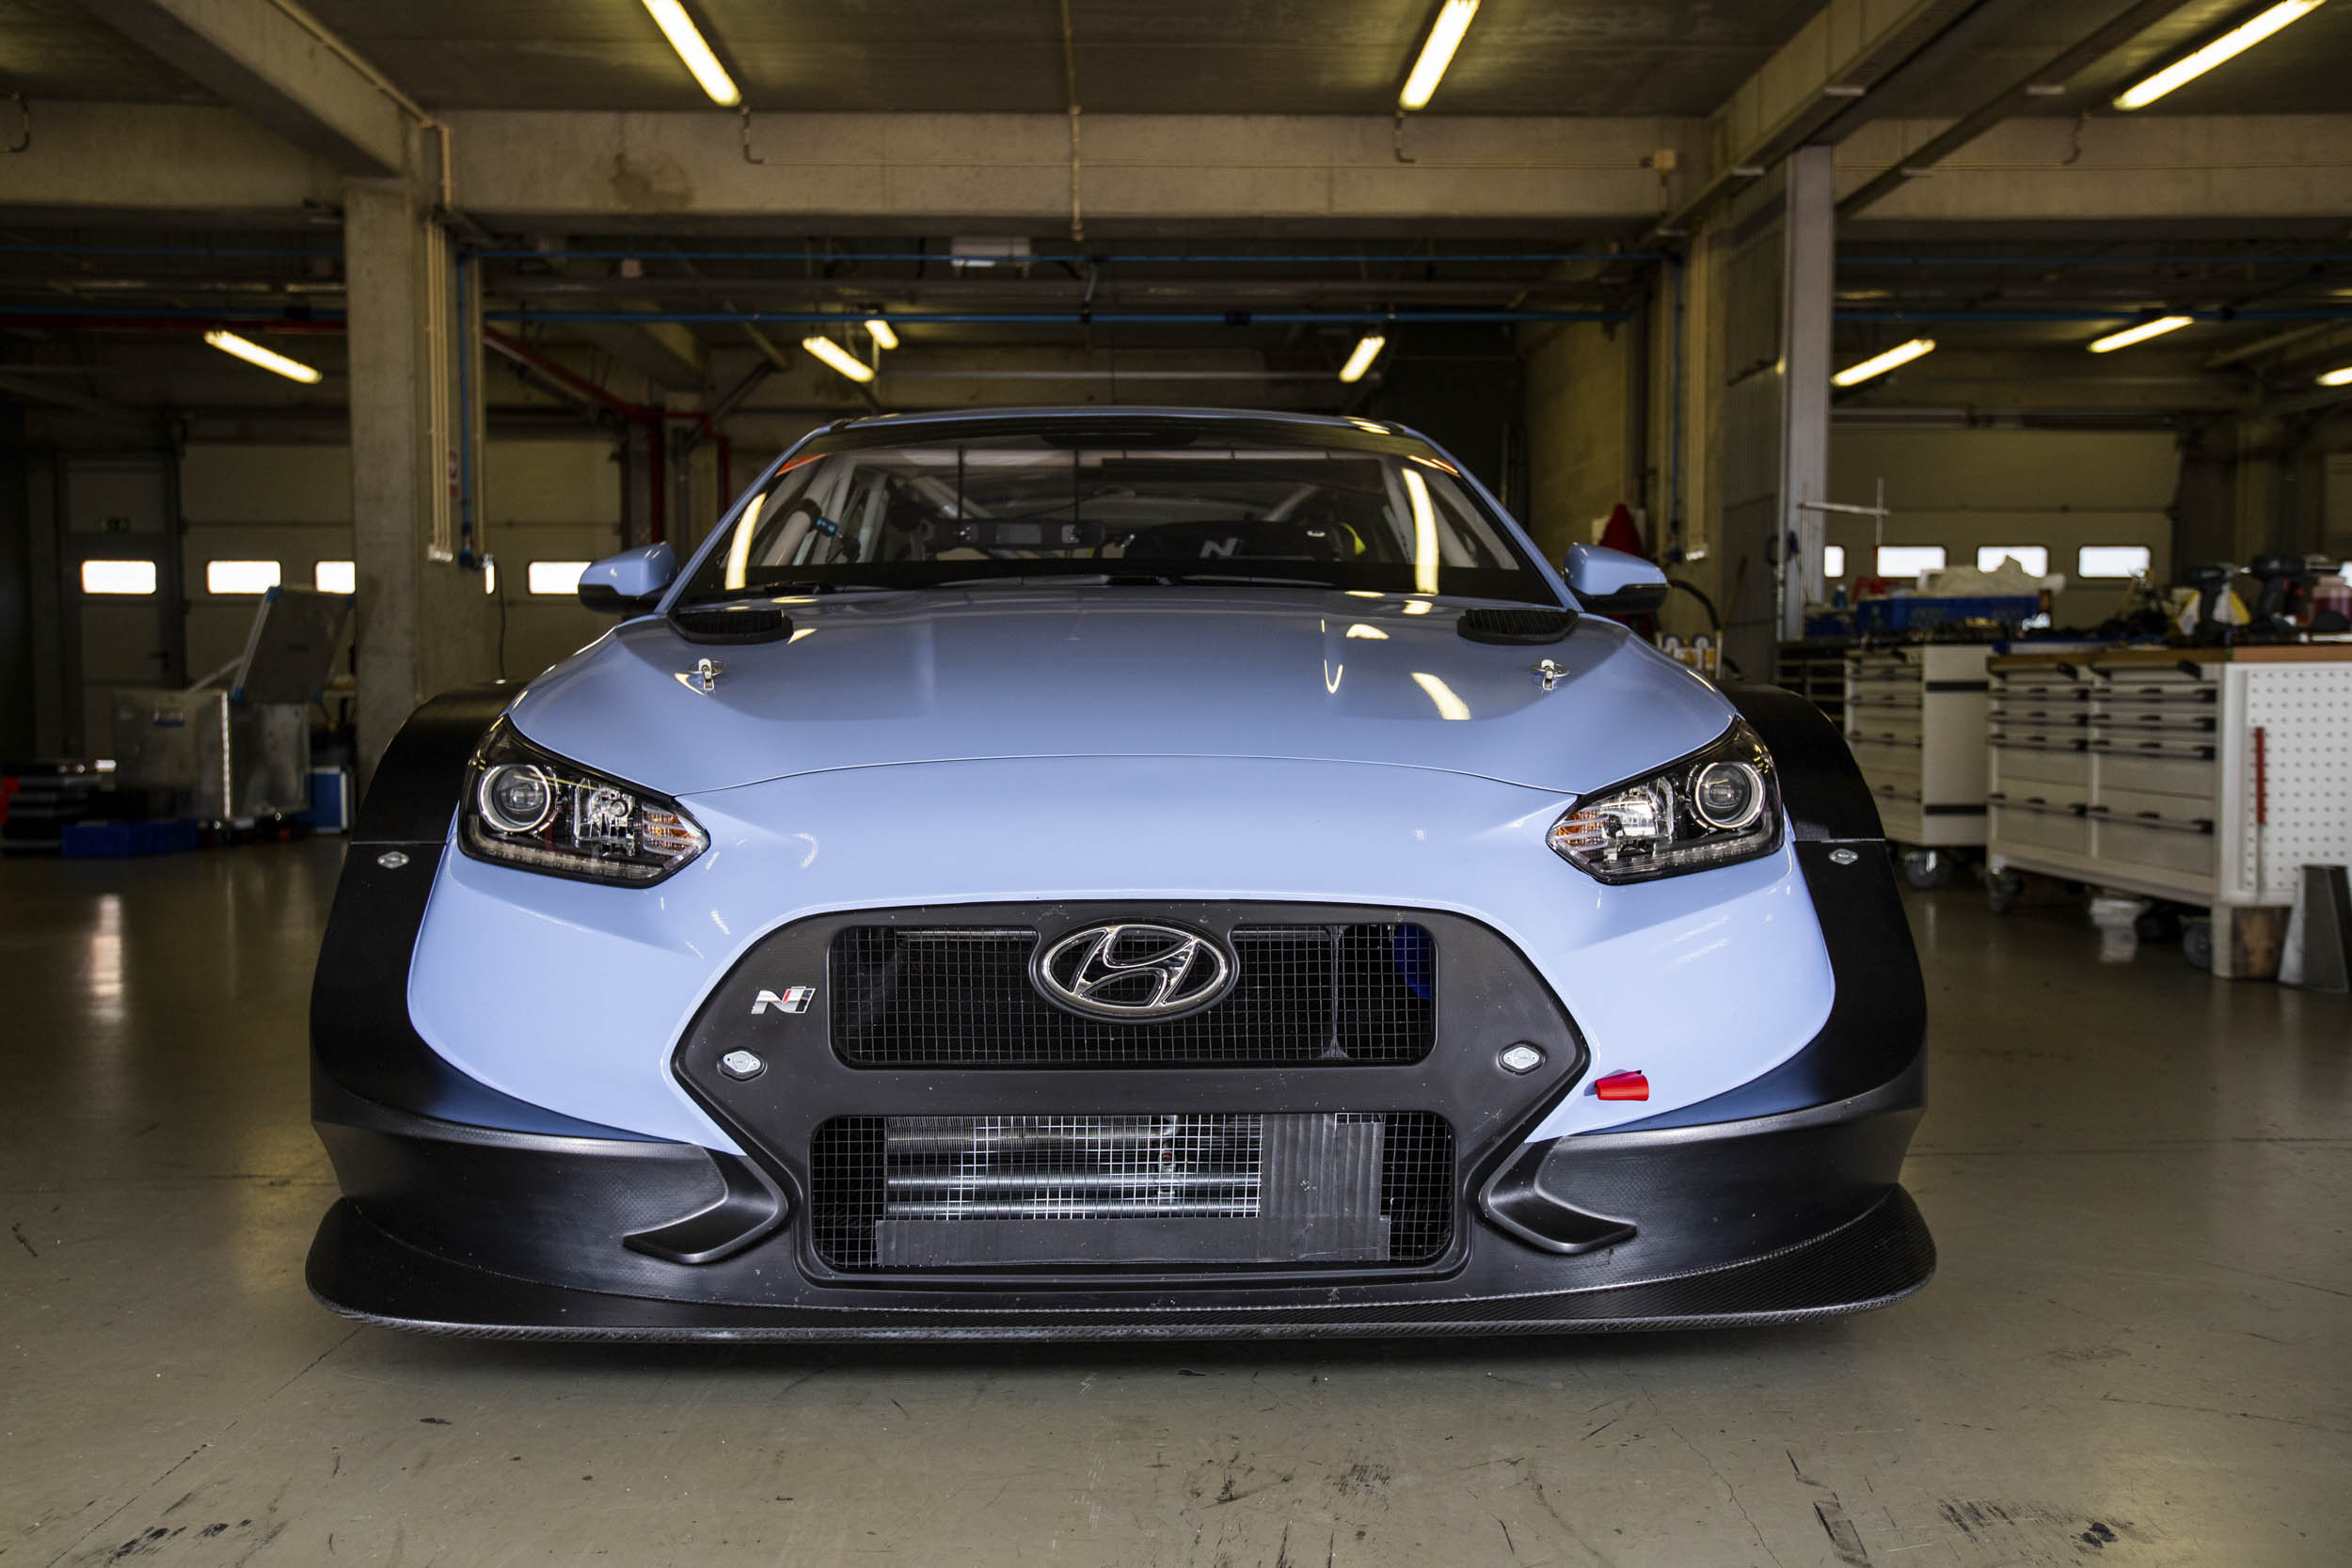 Hyundai Veloster N TCR front